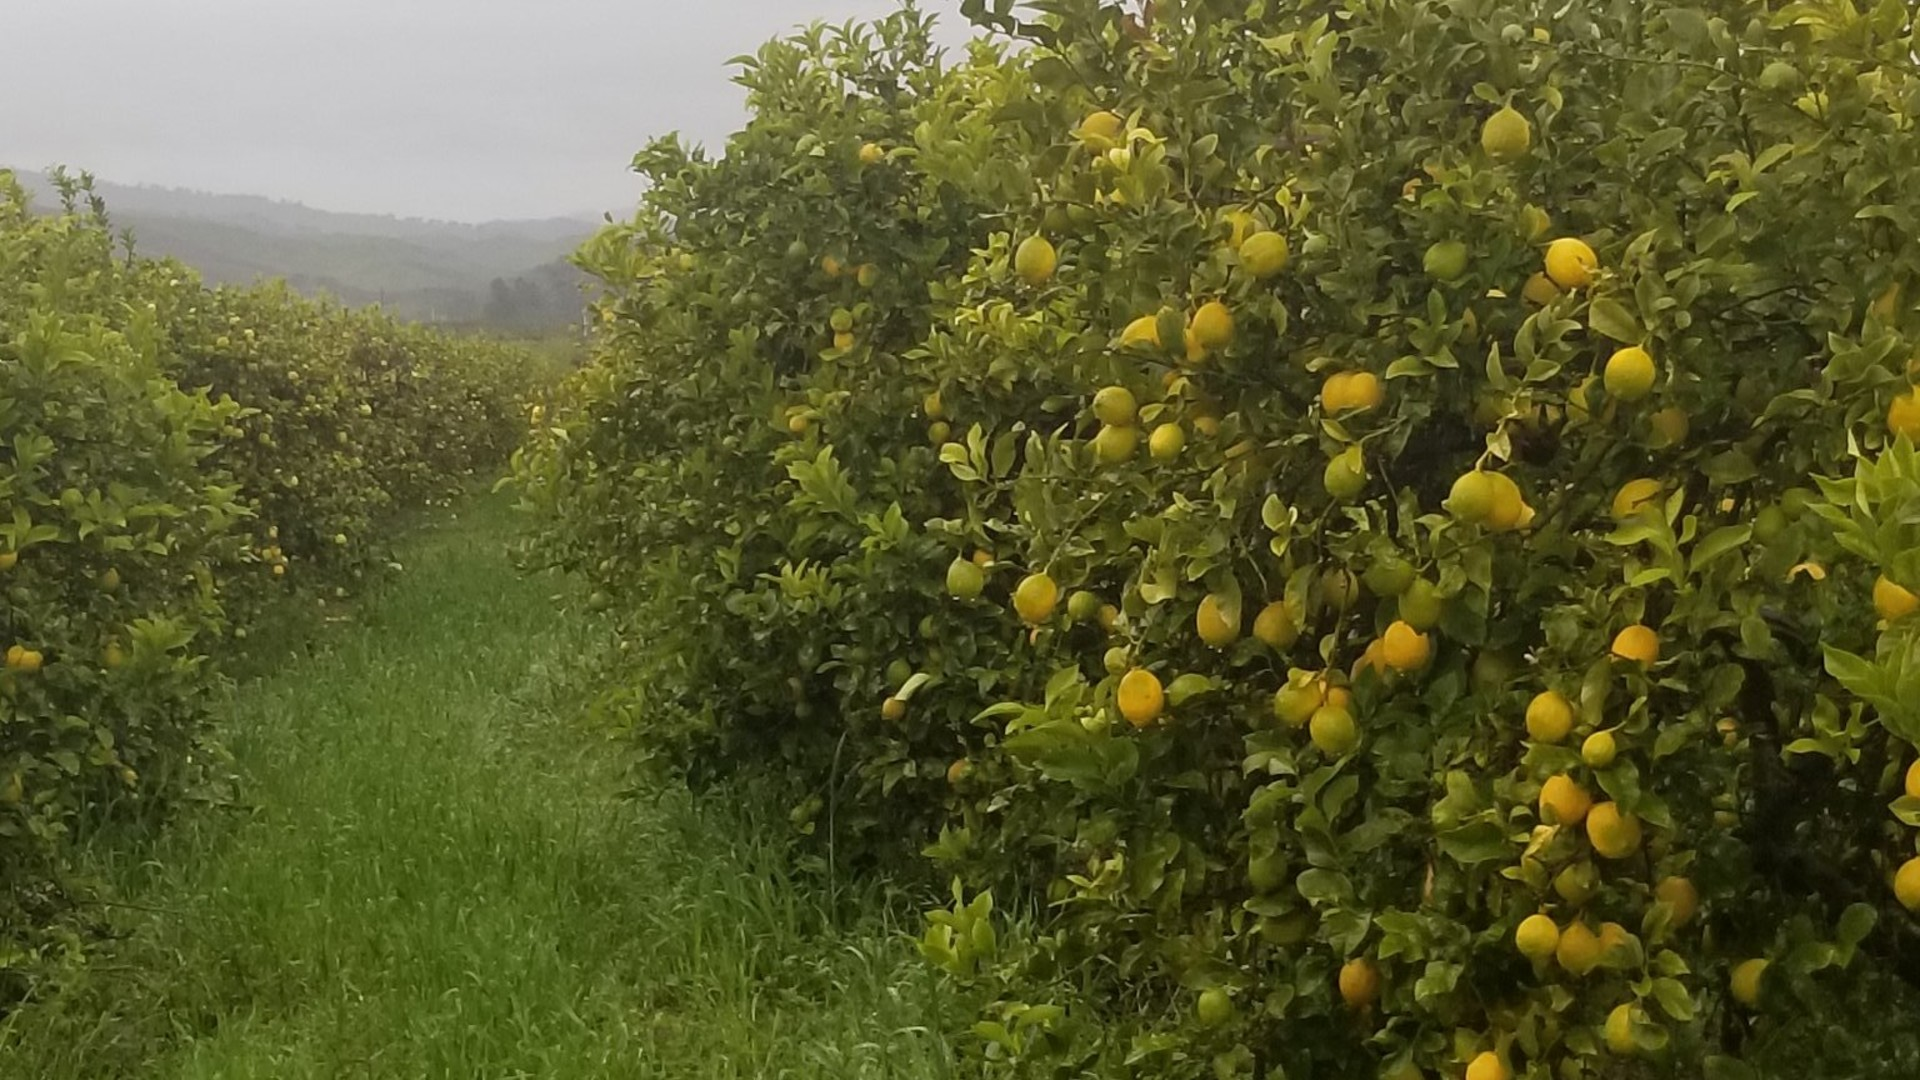 Lemons are Ready, but Markets are Not